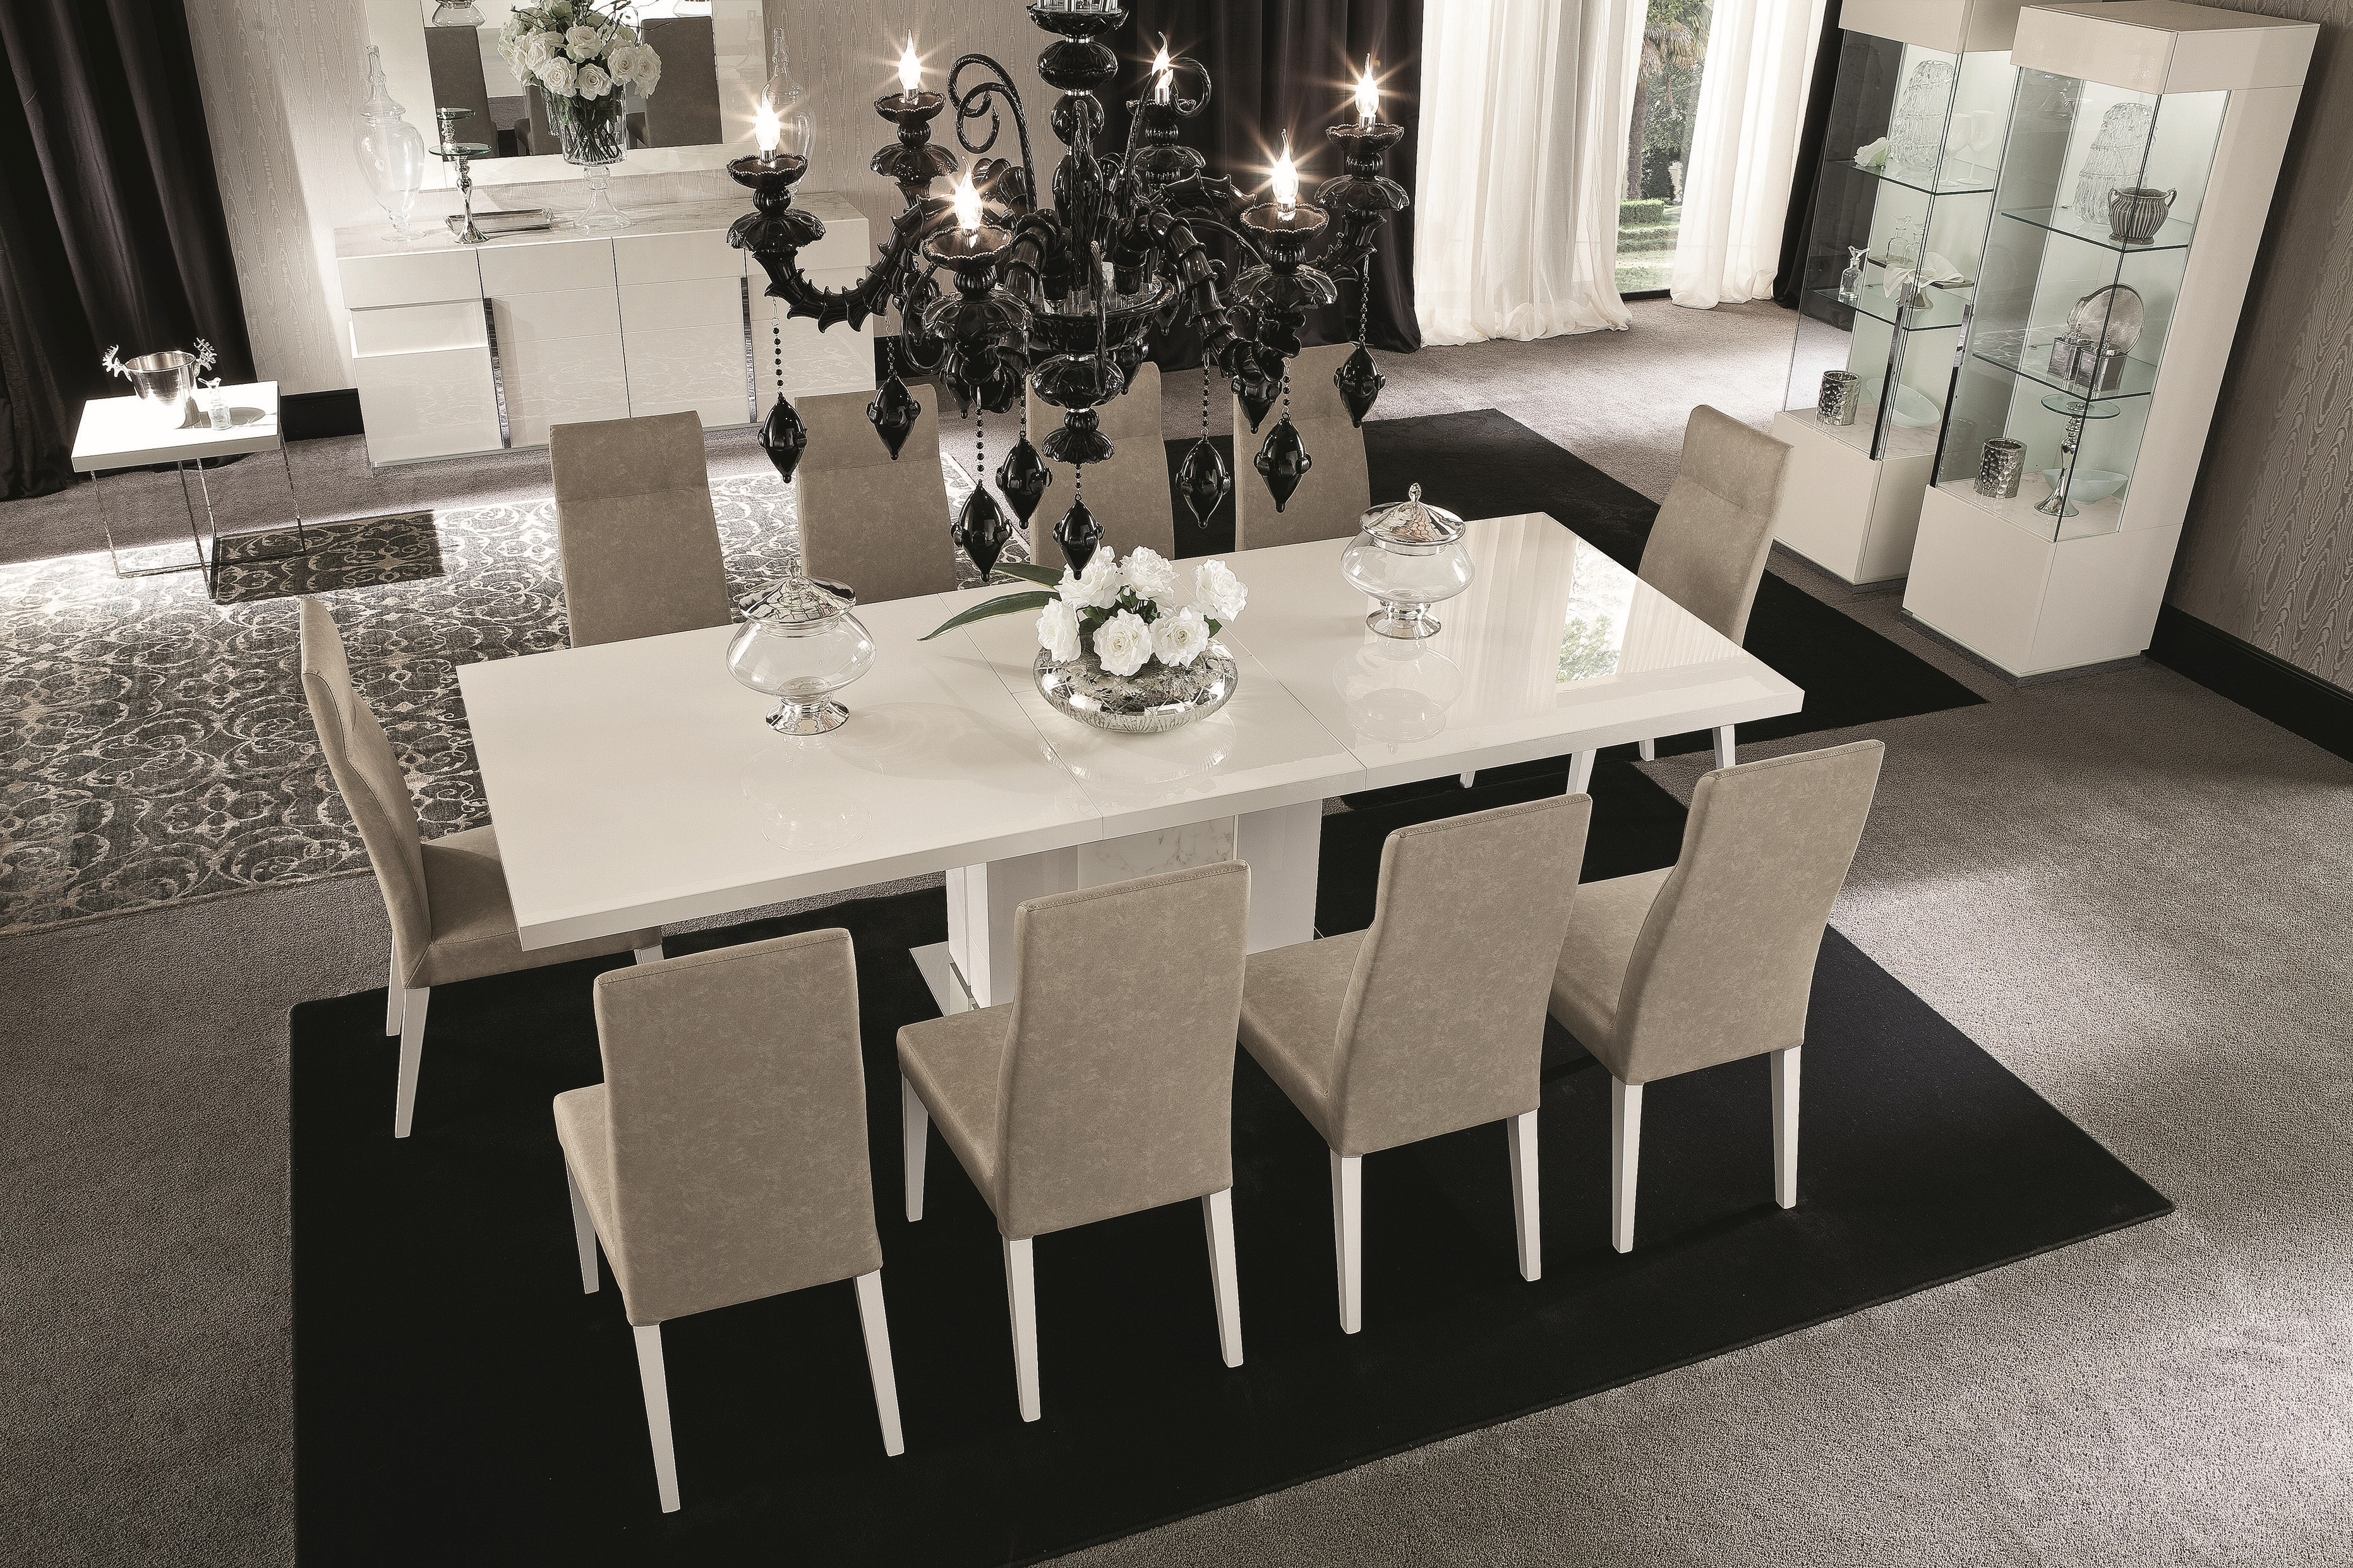 Canova Dining Table and 4 Chairs